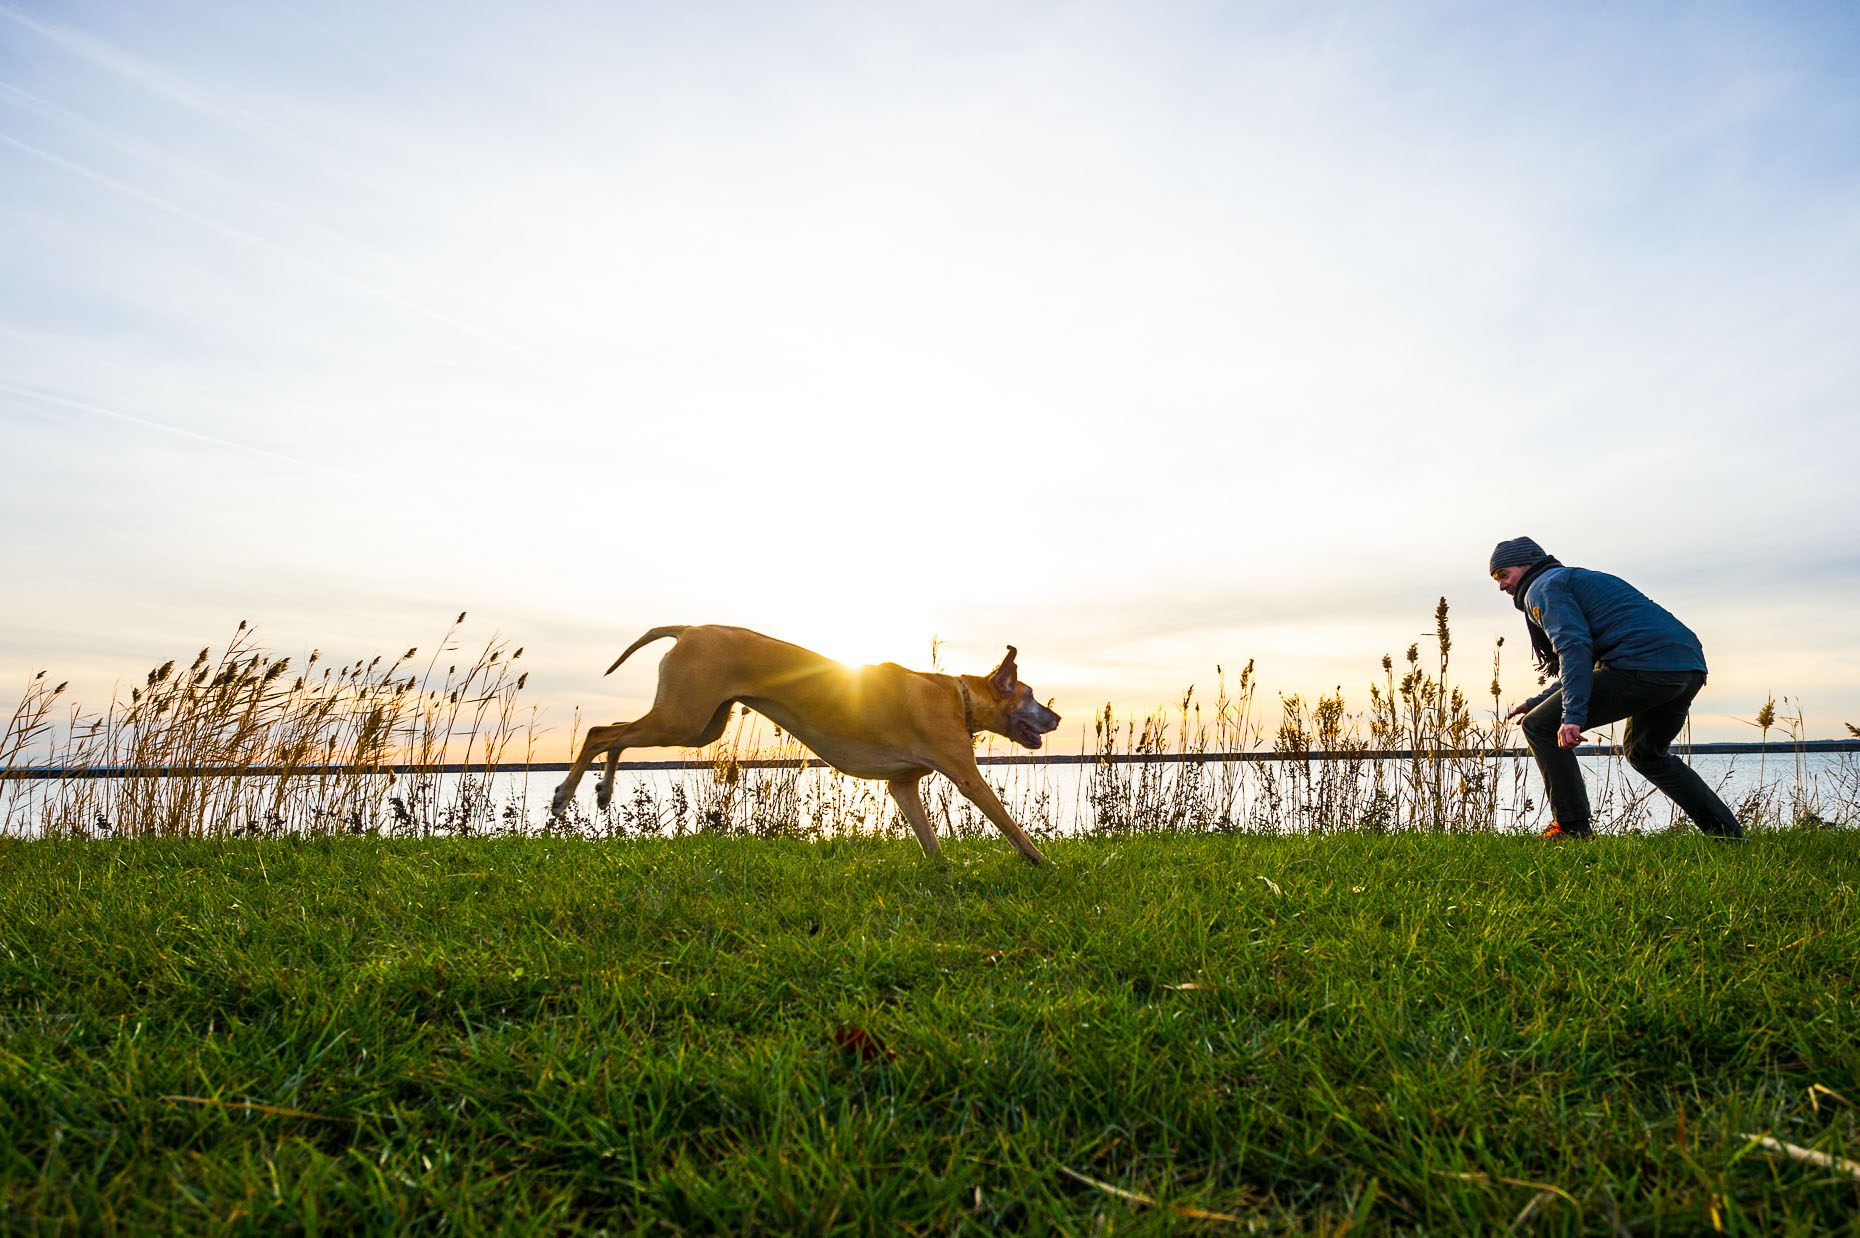 aaron-ingrao-scott-ruthie-dog-great-dane-fetch-sunset-sunflair